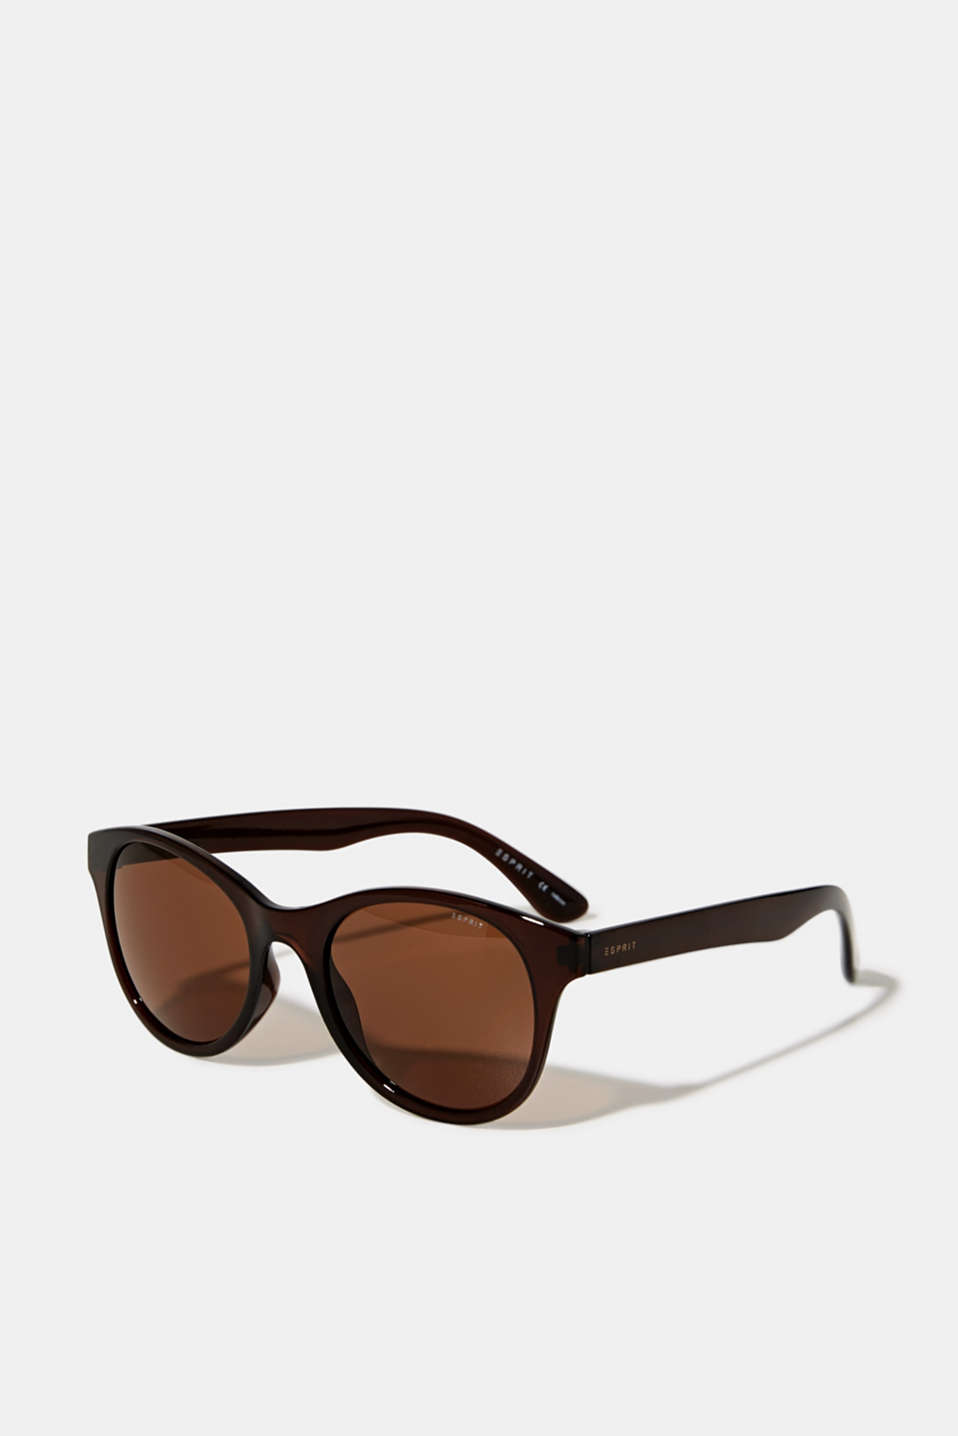 Esprit - Sunglasses with a timeless design